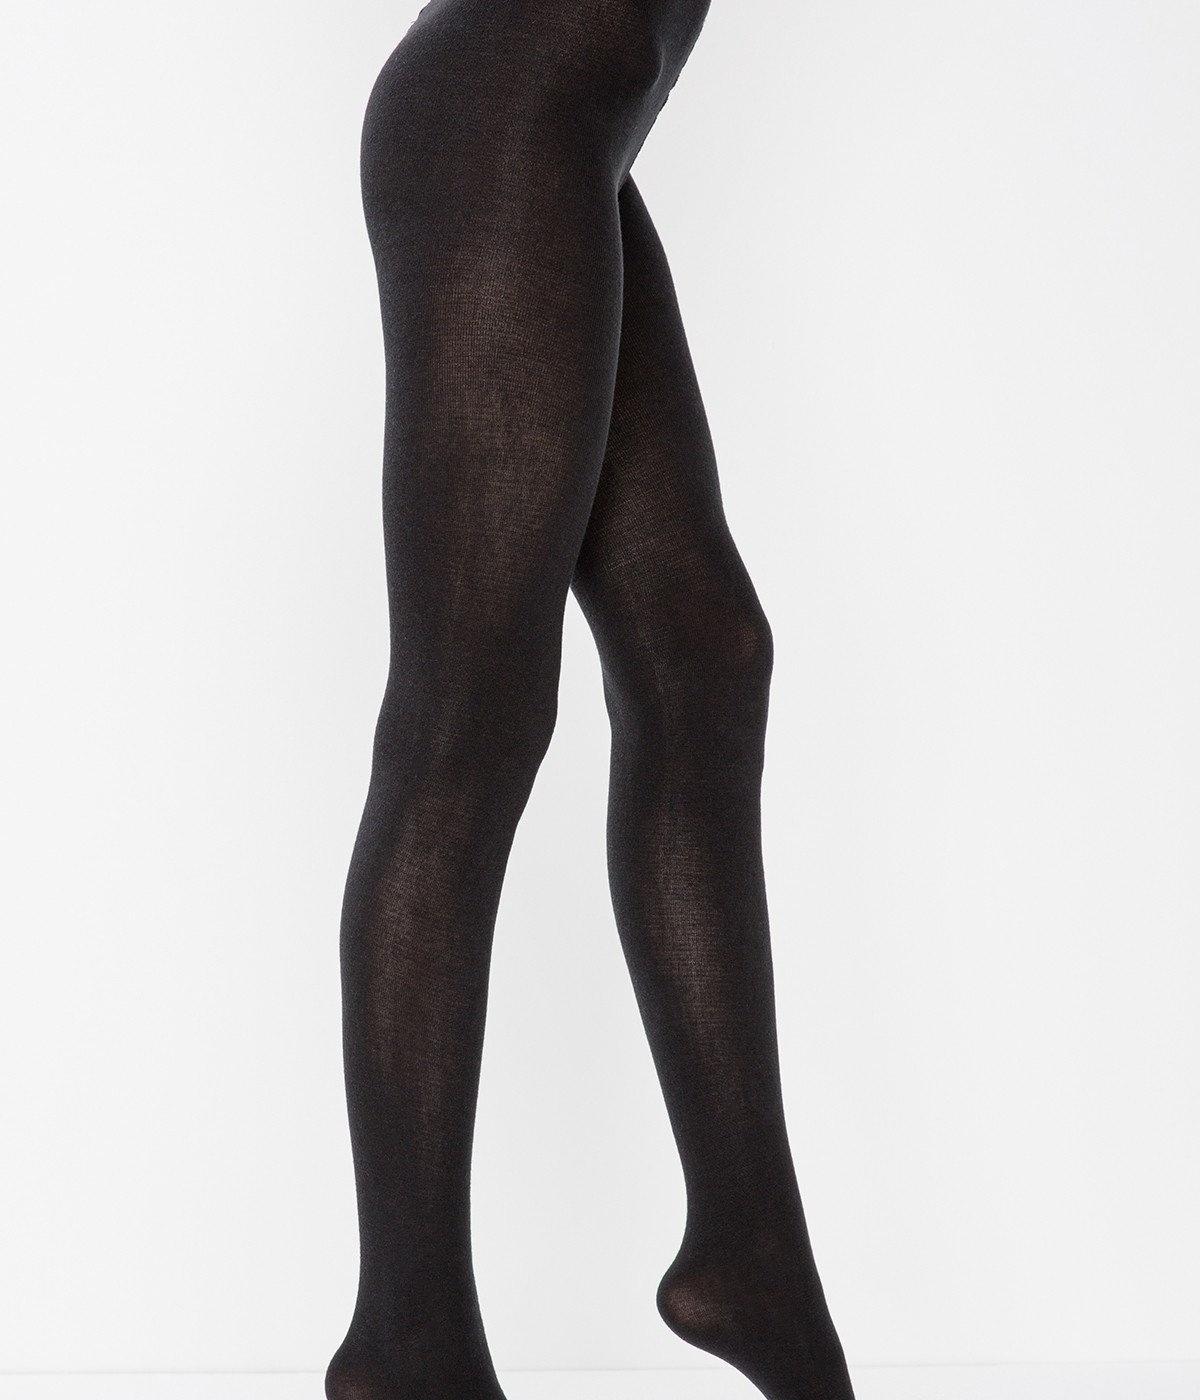 Angora & Wool Tights